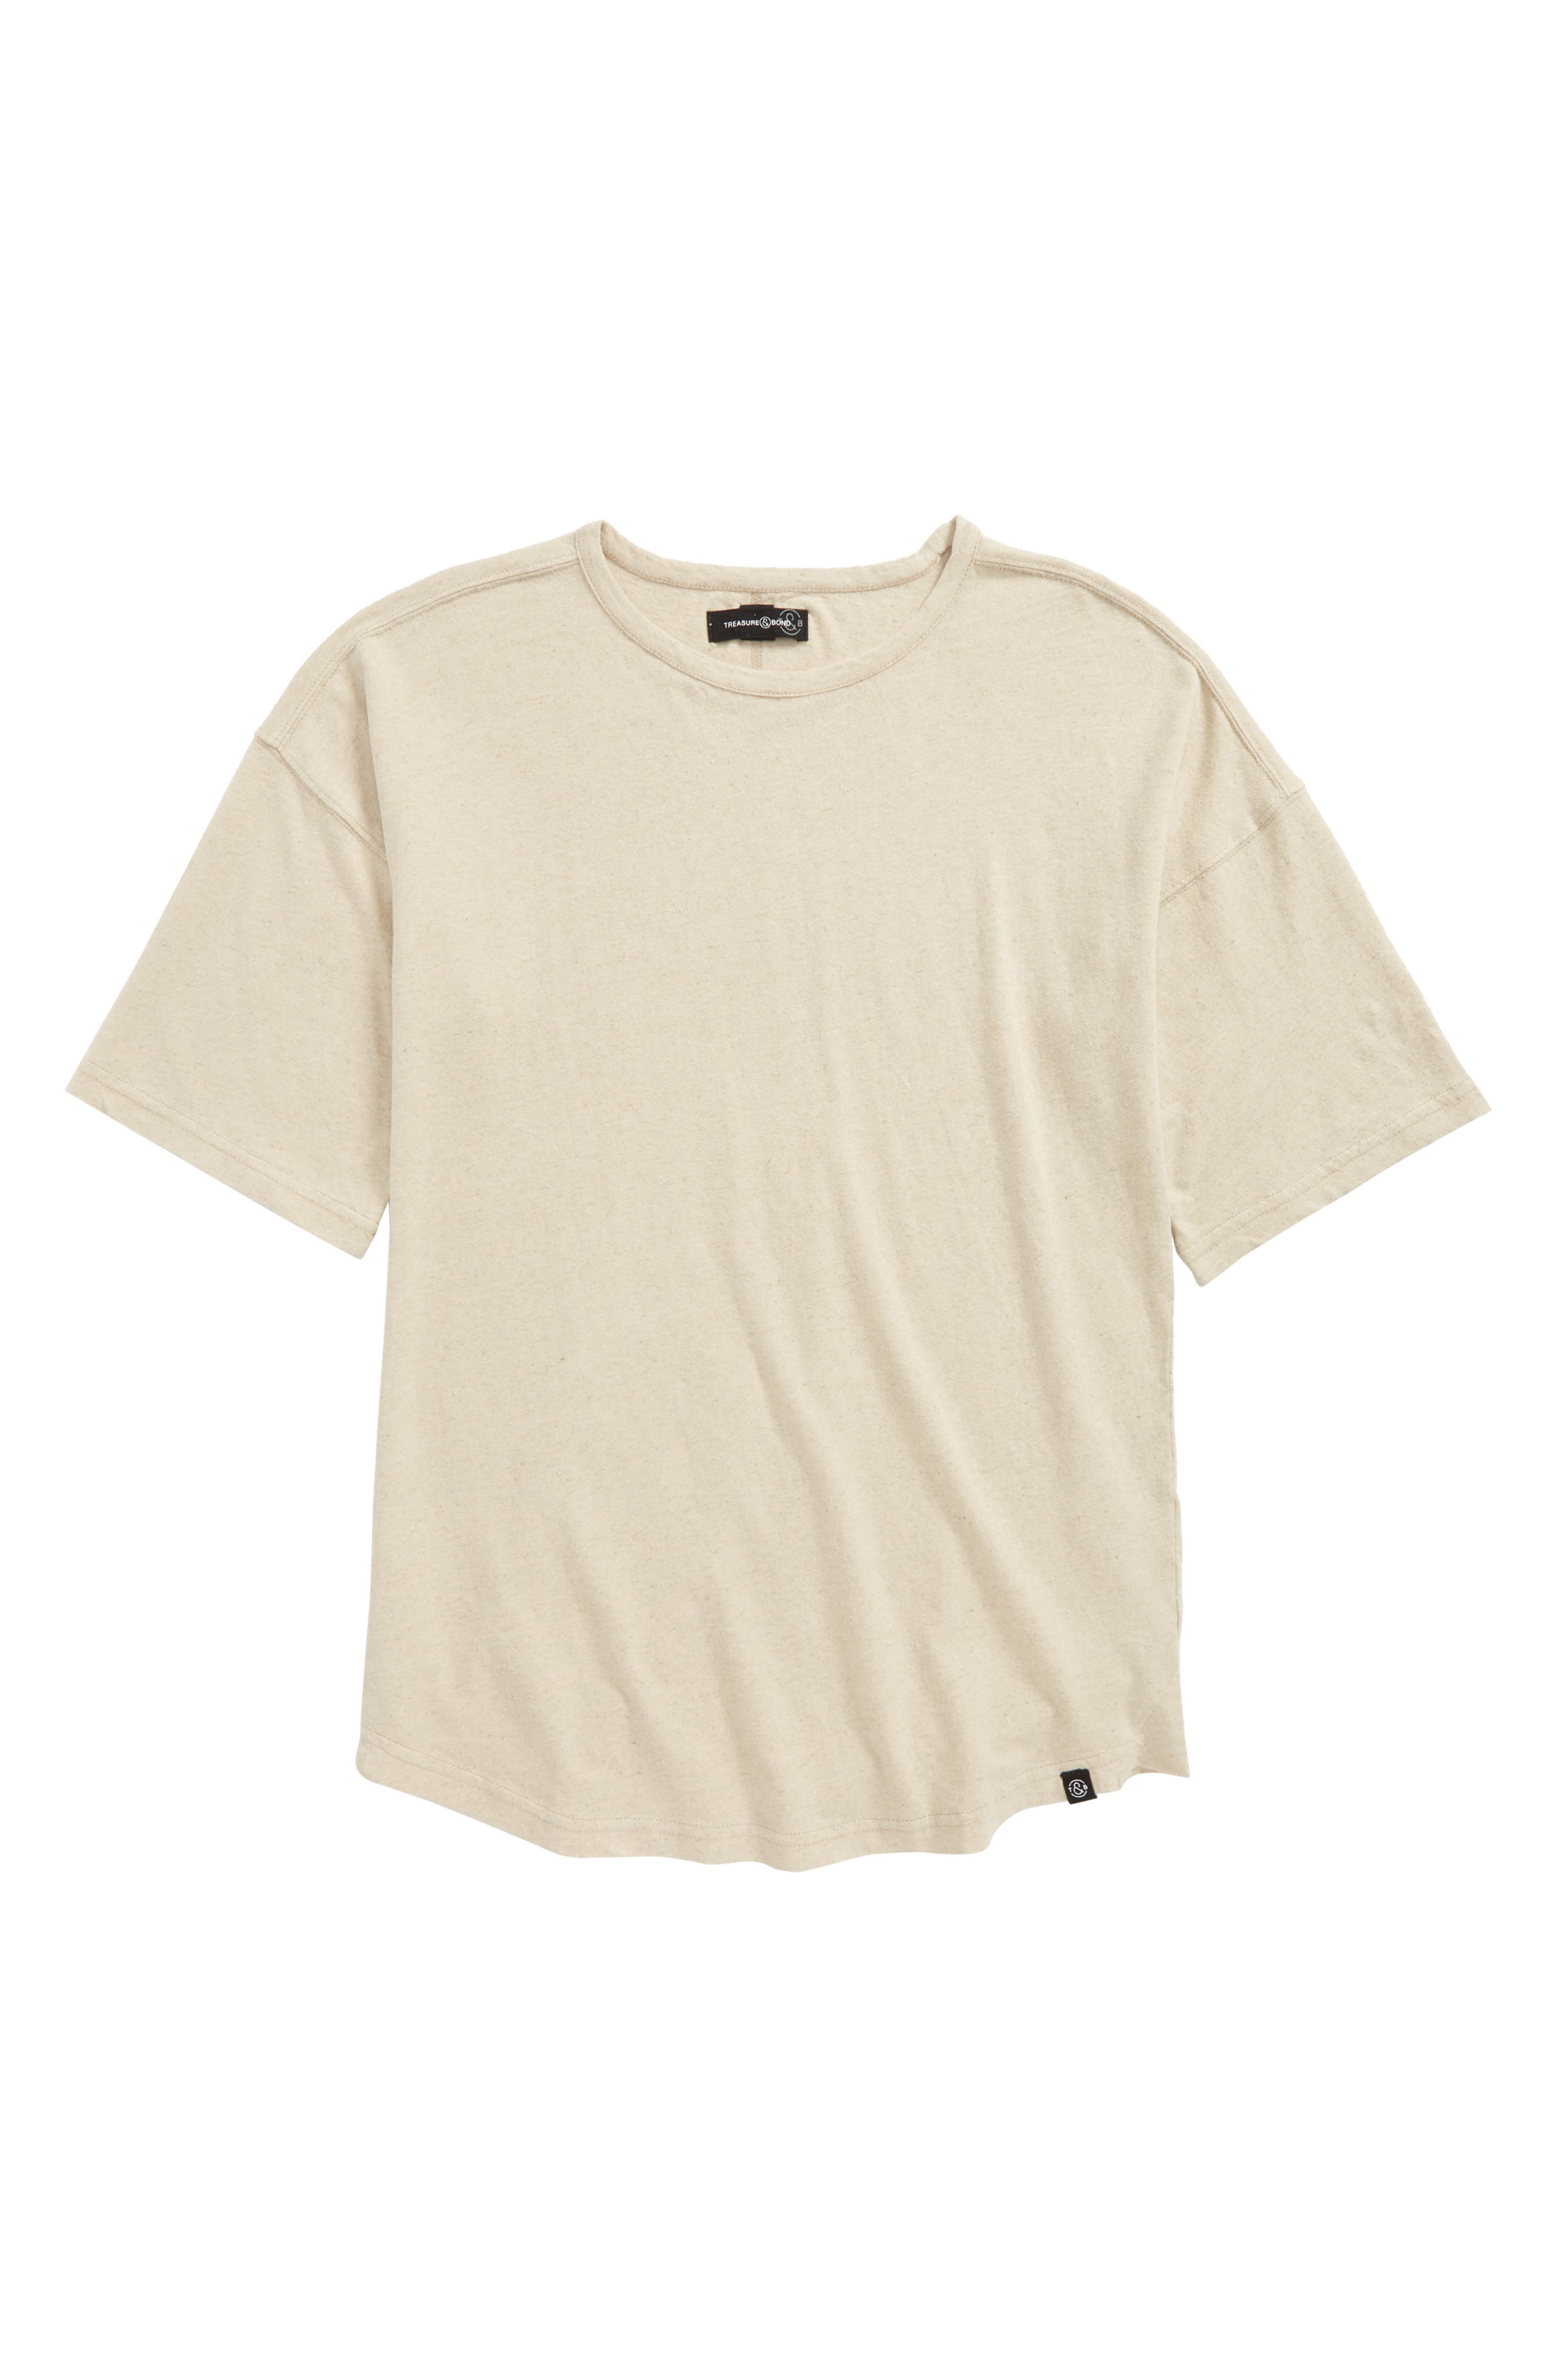 Treasure & Bond Dropped Shoulder Shirt (Big Boys)